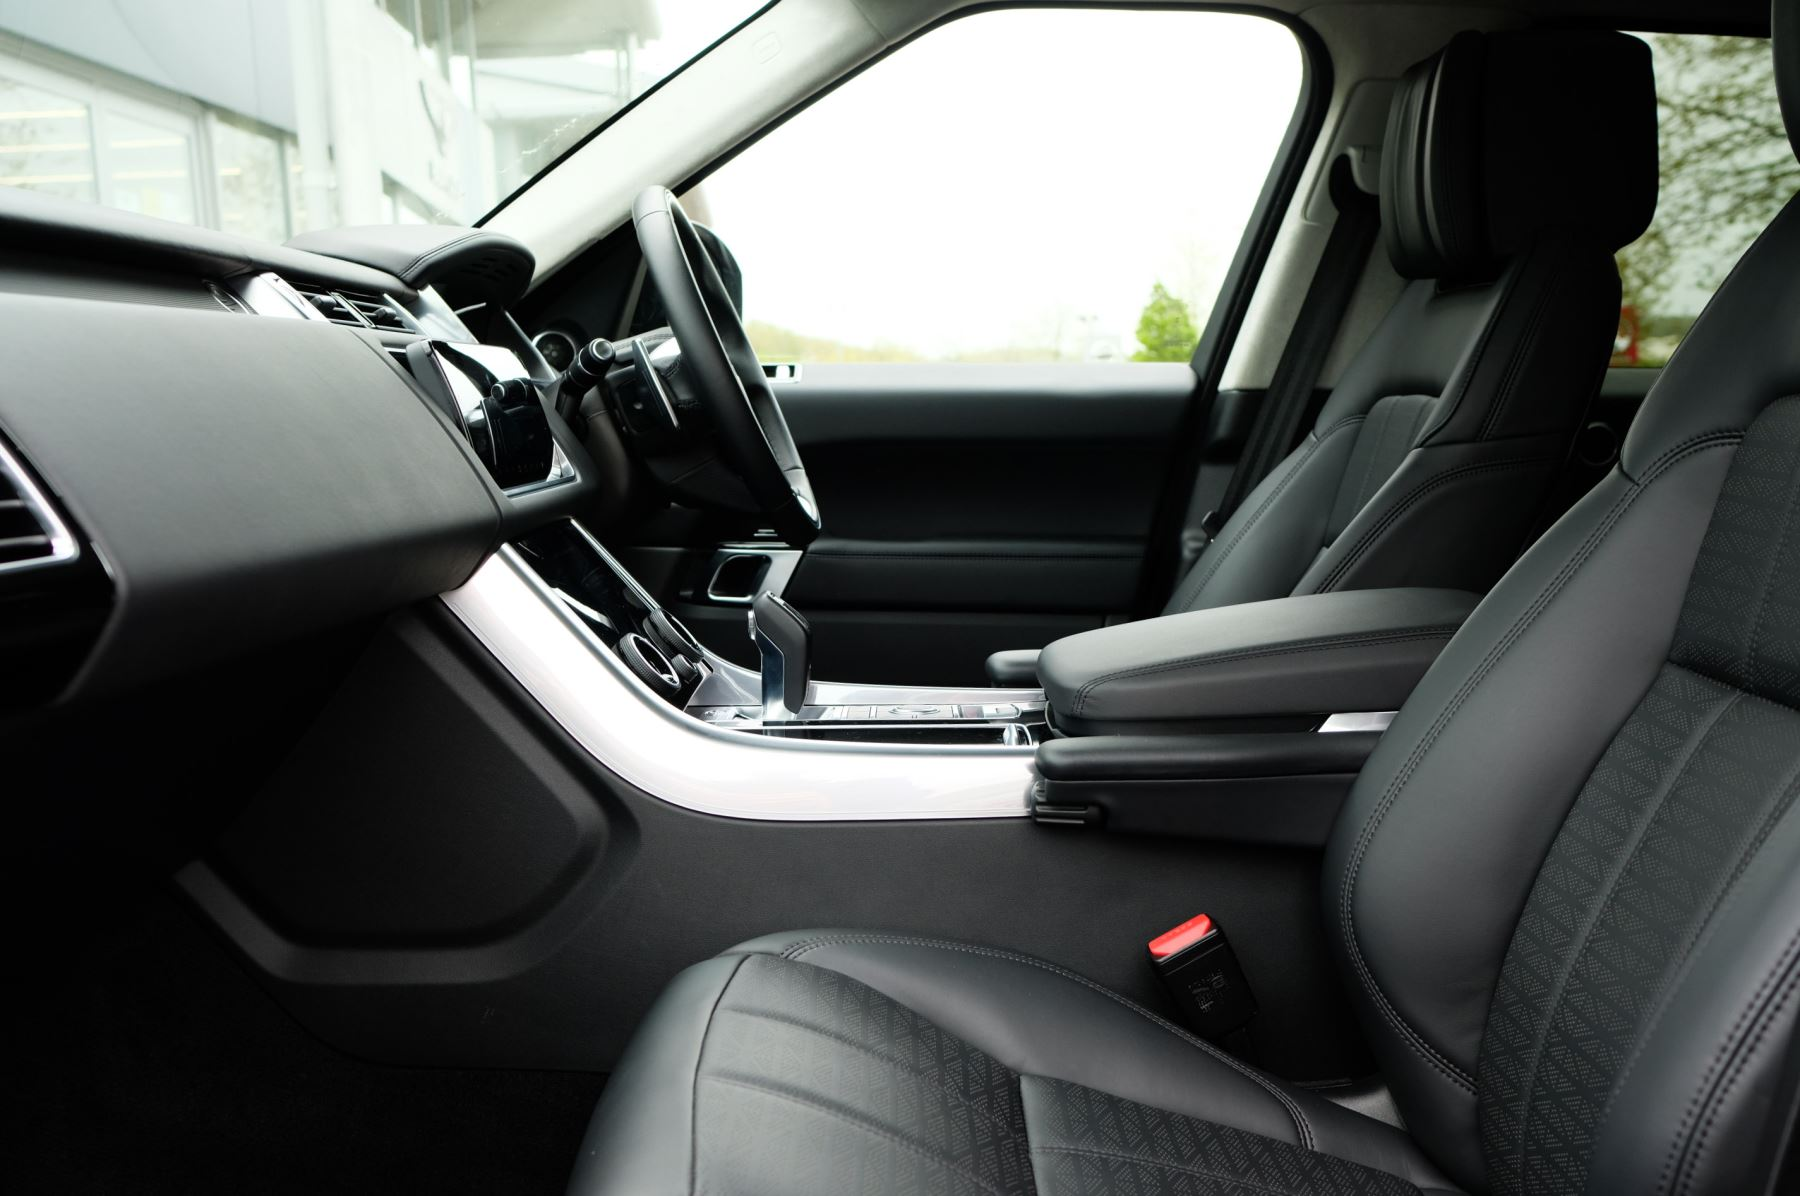 Land Rover Range Rover Sport 3.0 SDV6 Autobiography Dynamic 5dr [7 Seat] - Rear Seat Entertainment - 21 Inch Alloys image 17